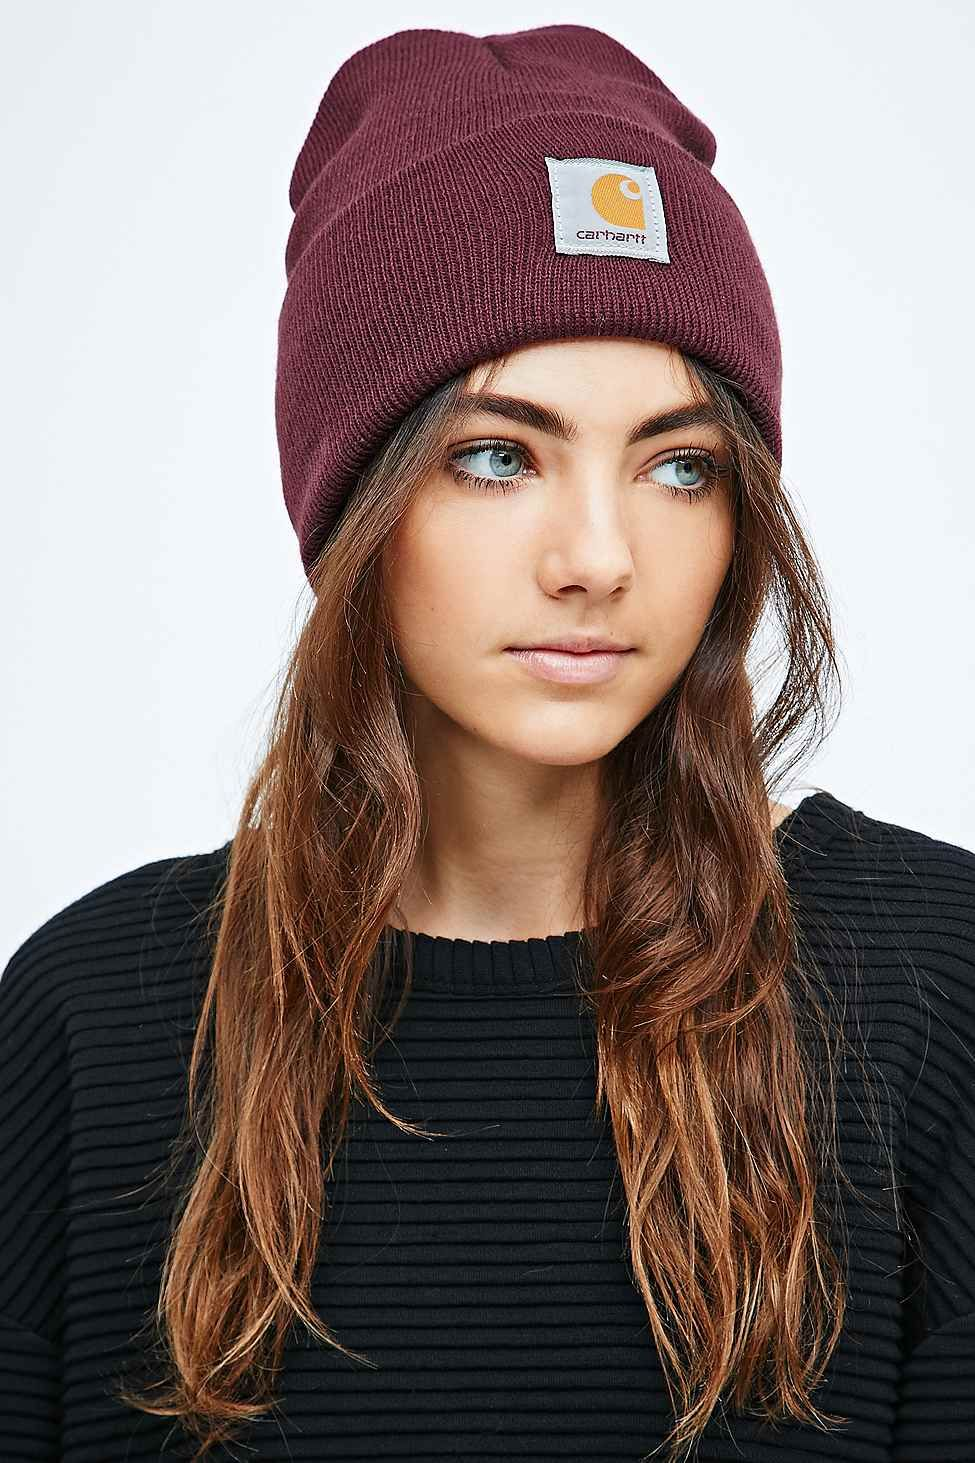 The maroon beanie matches perfectly with her bright eyes and light brunette  hair 8e66ef20c8e